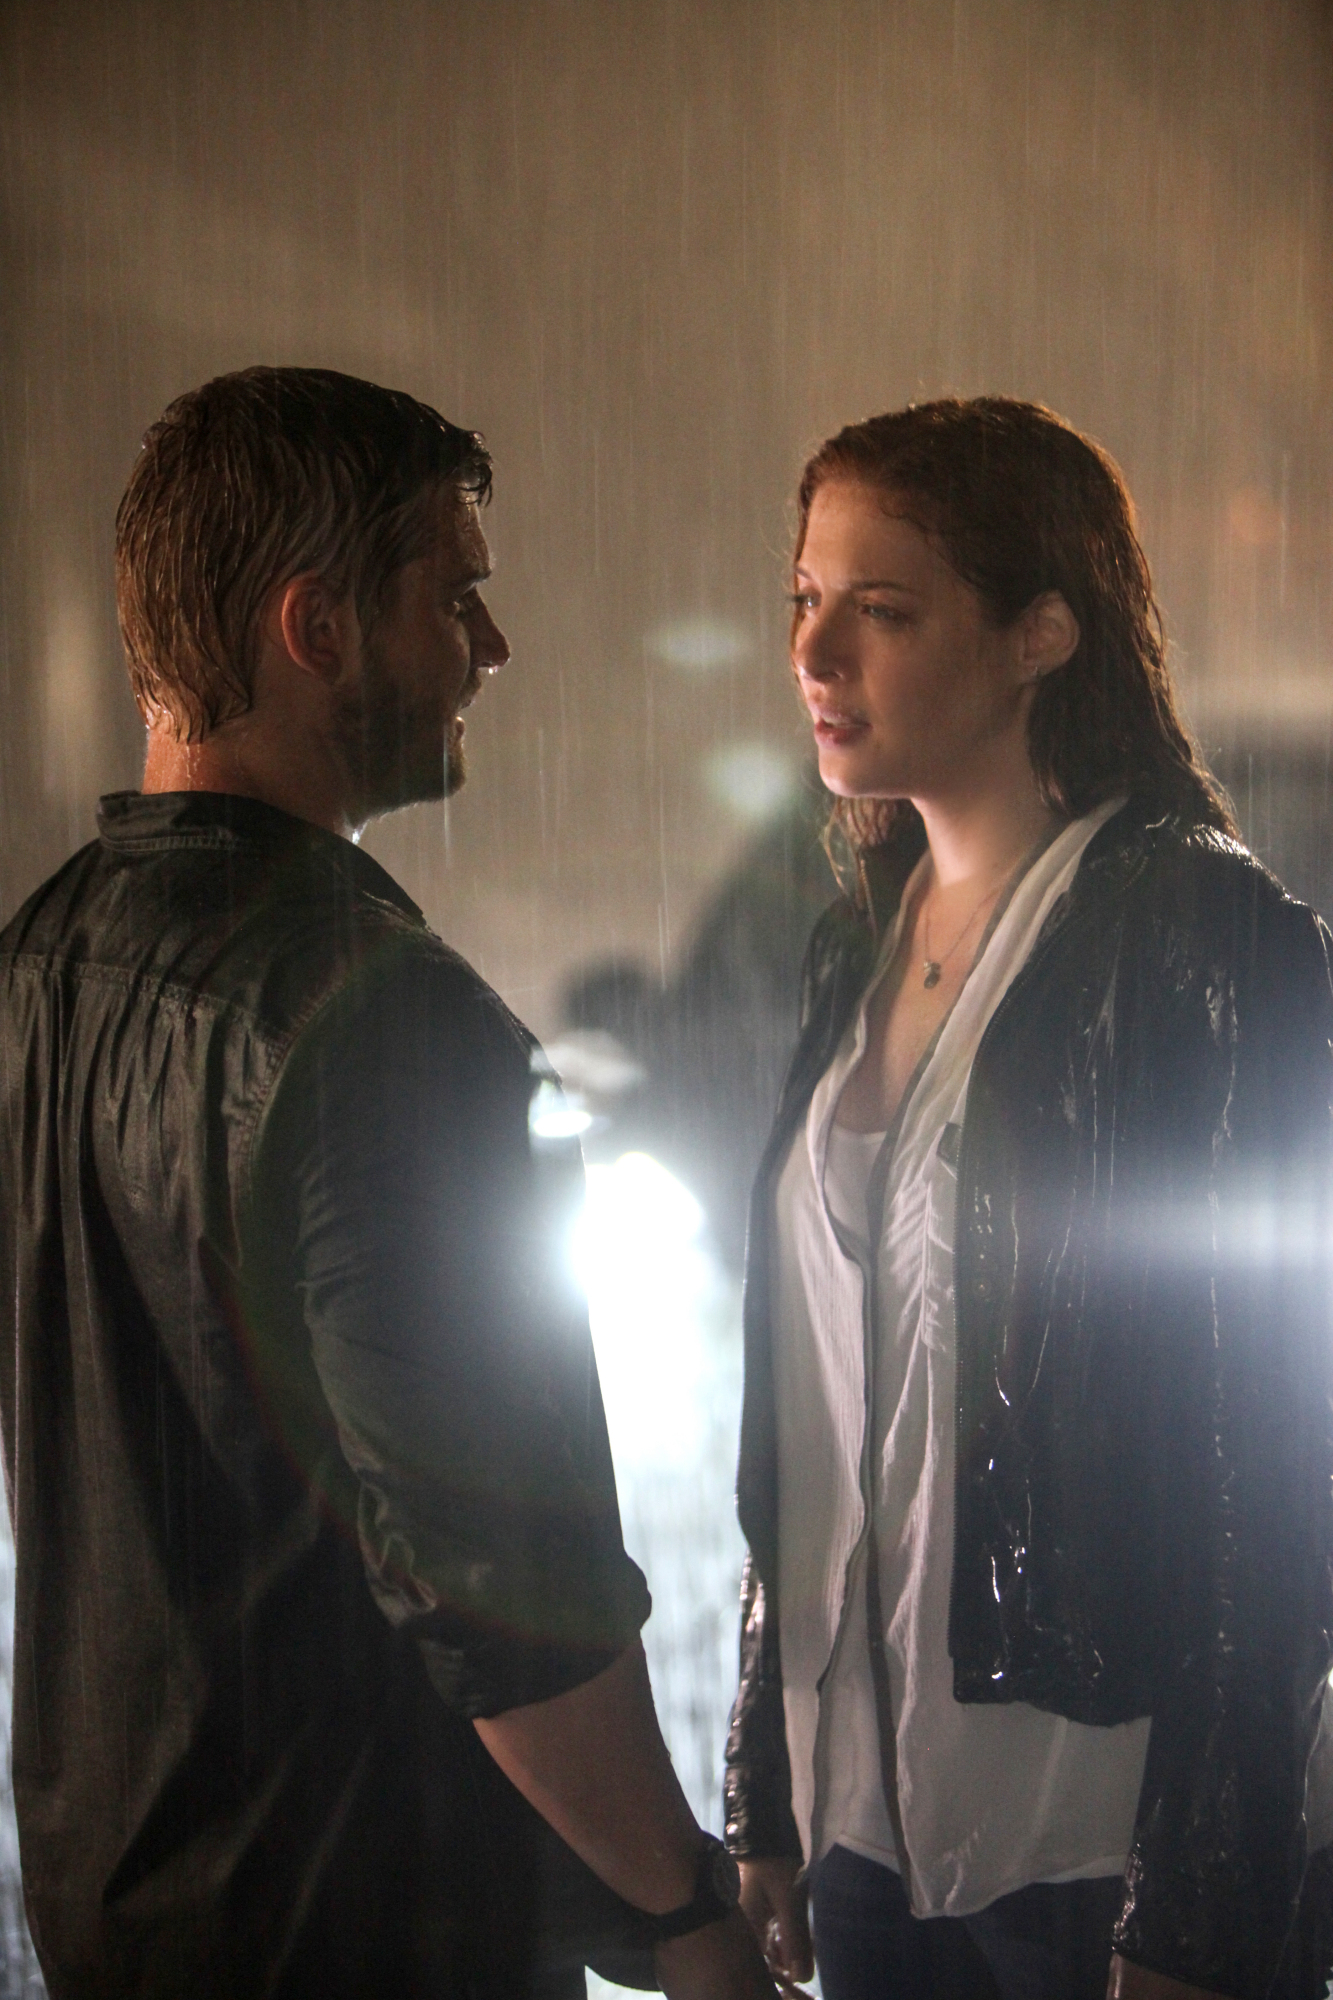 6. When they kissed in the rain